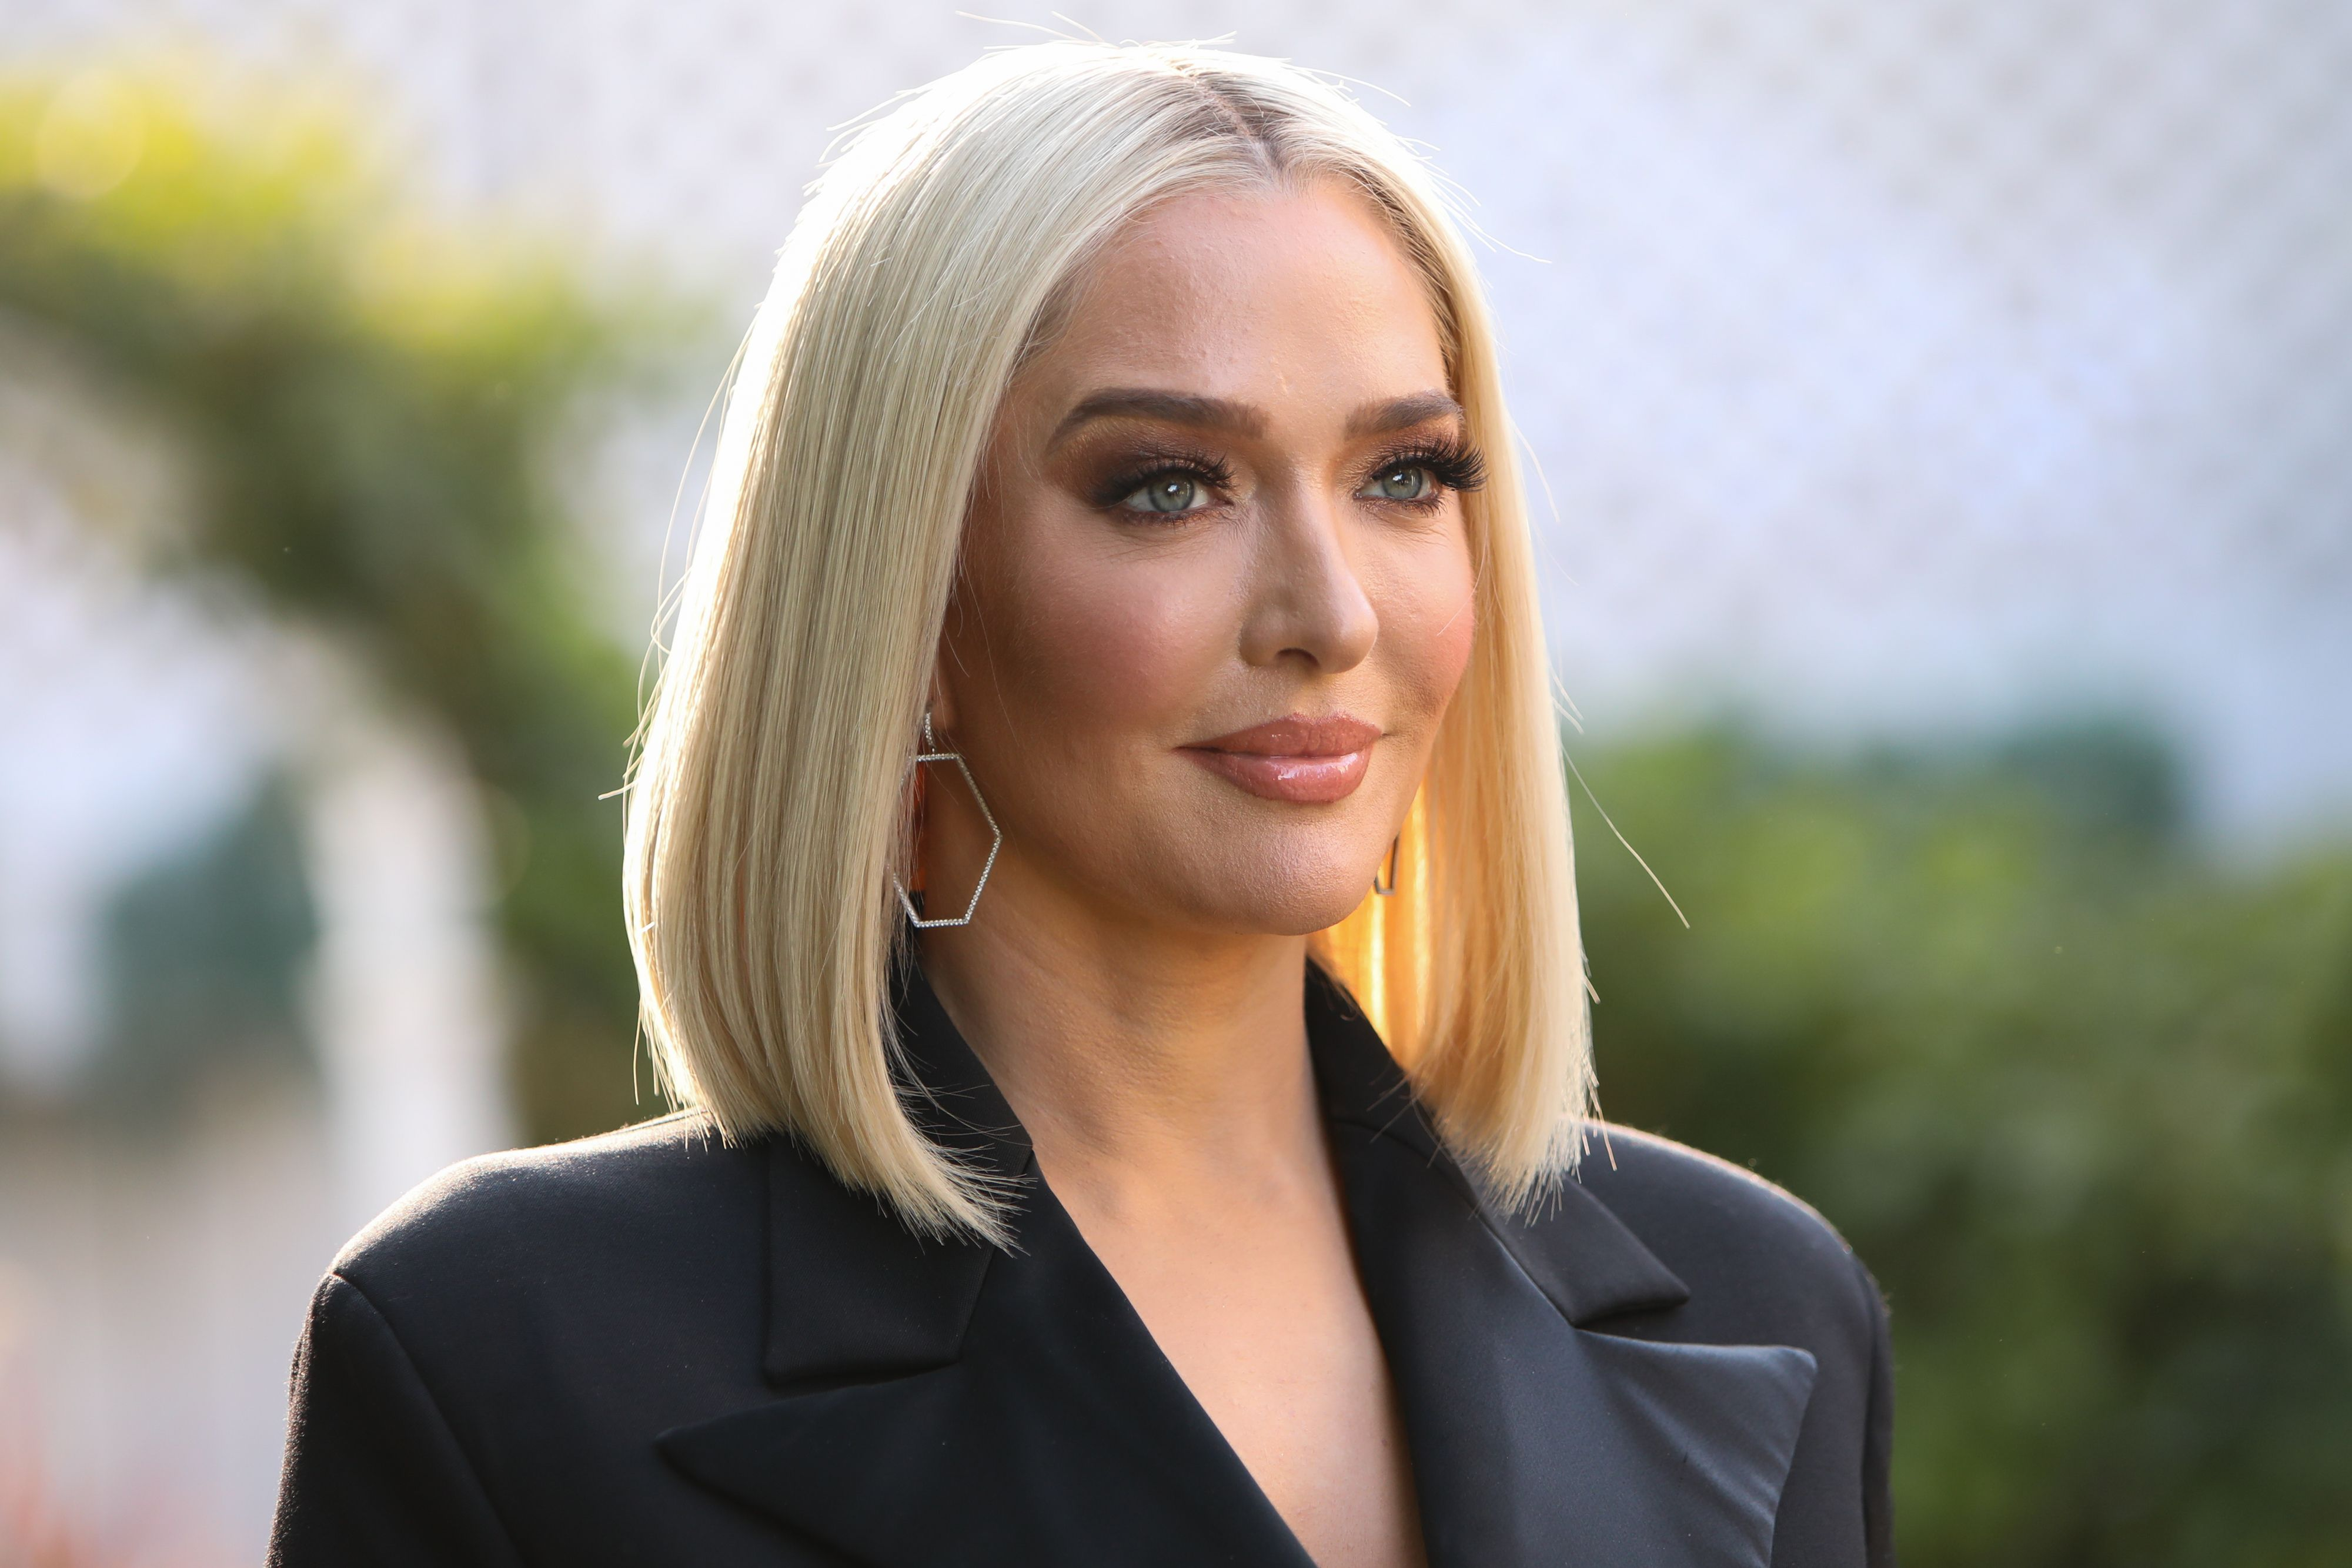 """Erika Jayne at Hallmark Channel's """"Home & Family"""" at Universal Studios in Hollywood in 2019   Source: Getty Images"""